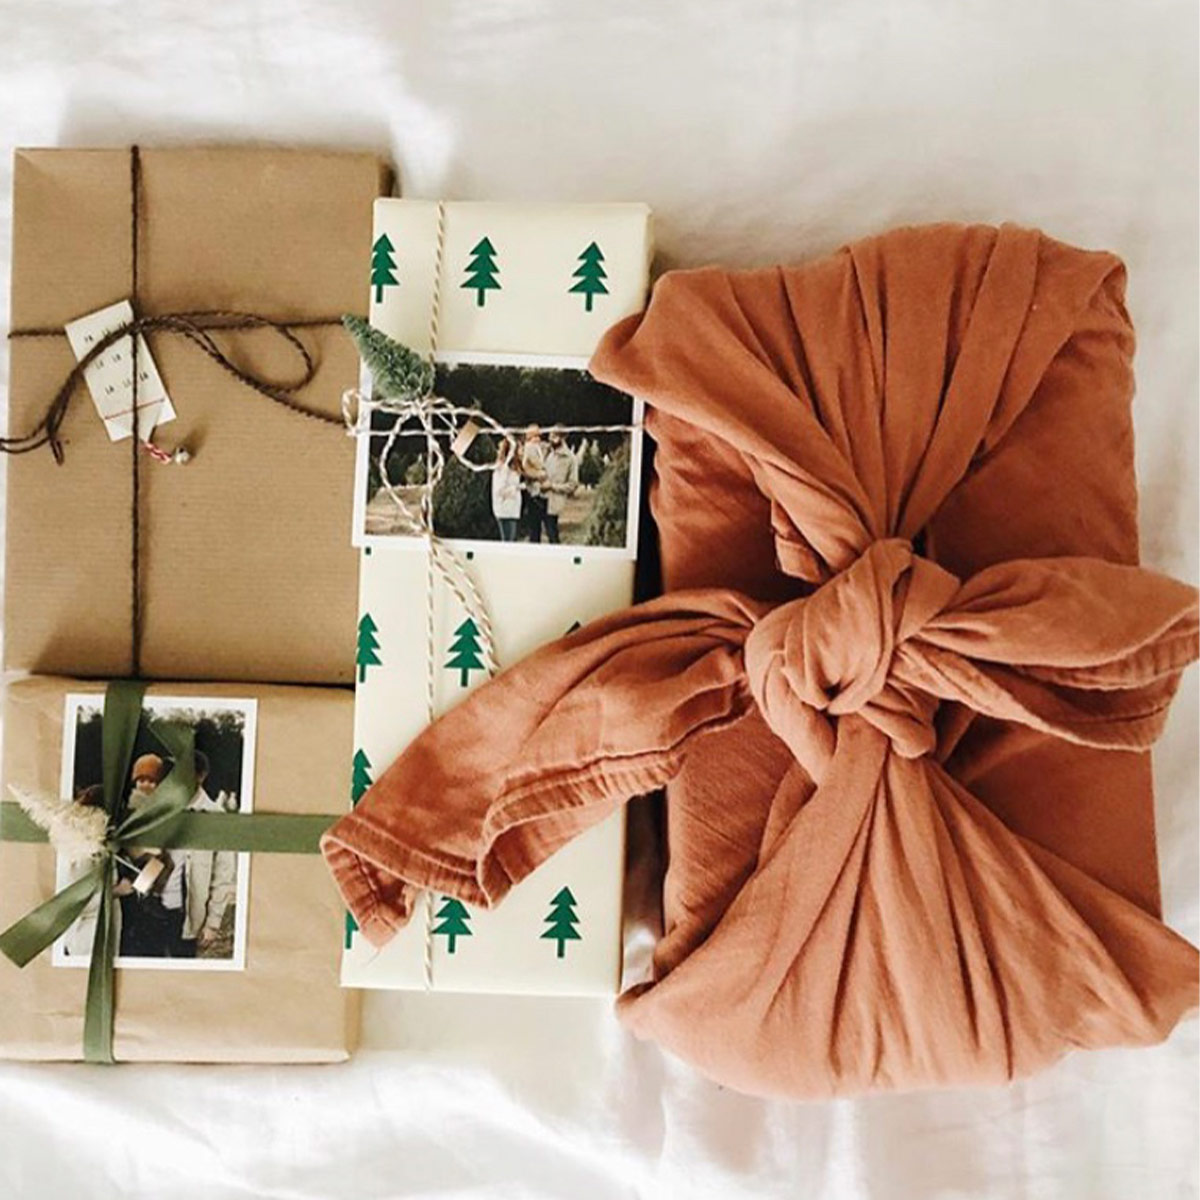 Creatively wrapped gifts with photo prints on them